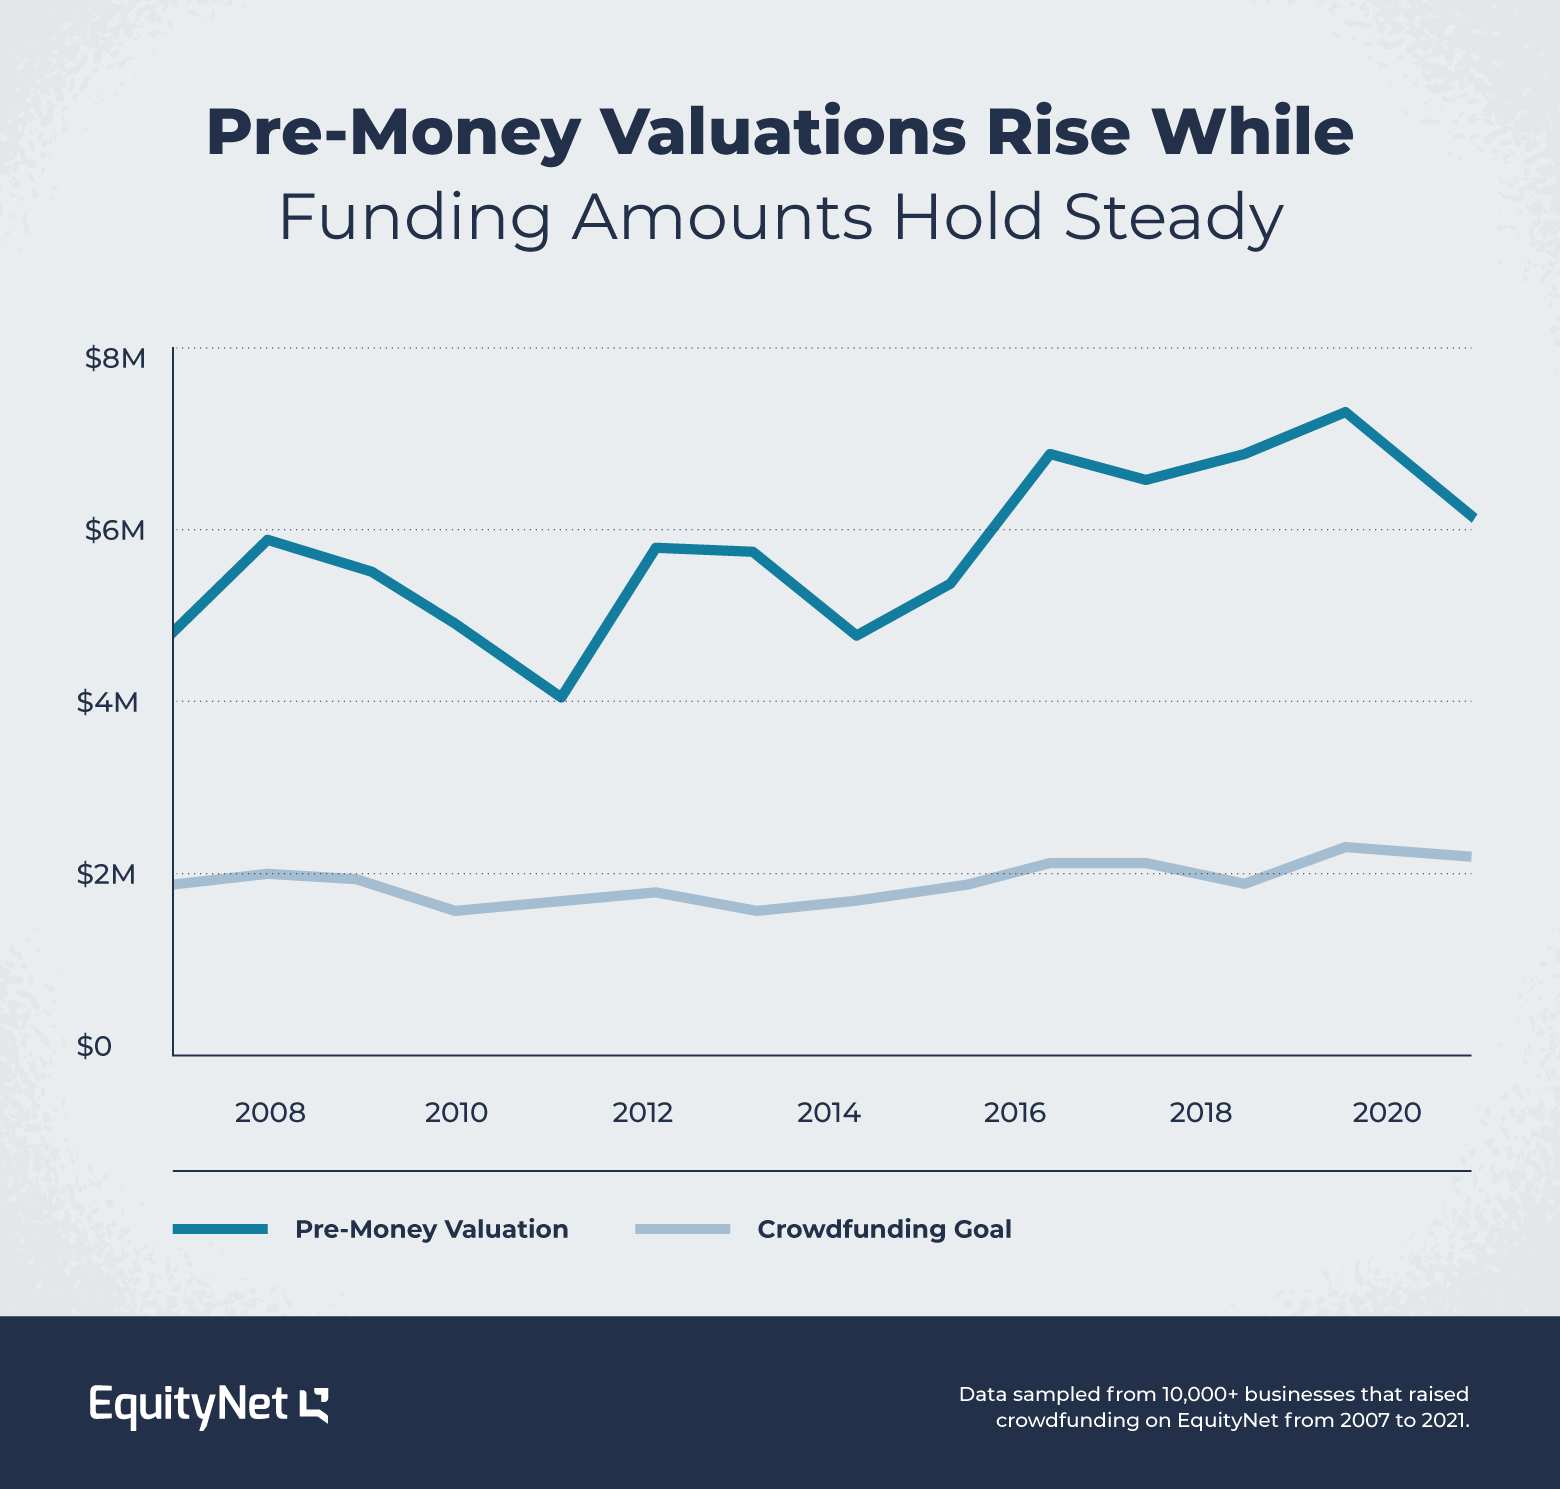 pre-money valuations in equity crowdfunding compared to funding goals